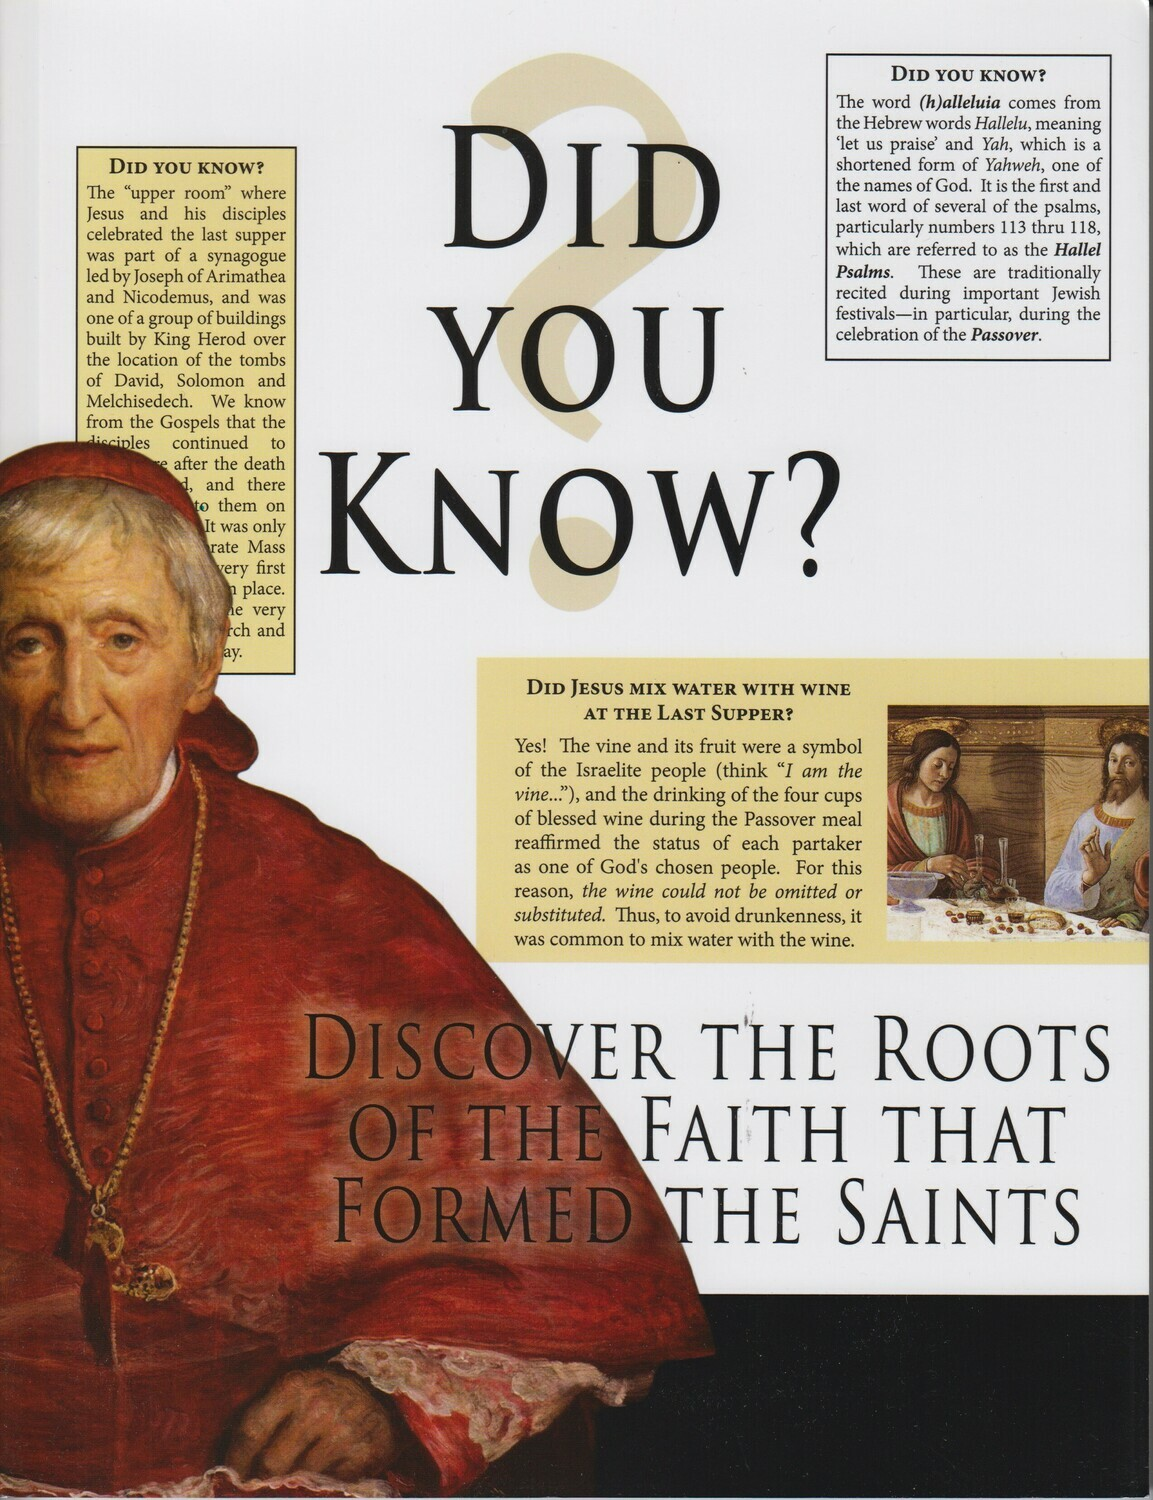 Discover the roots of the faith that formed the saints